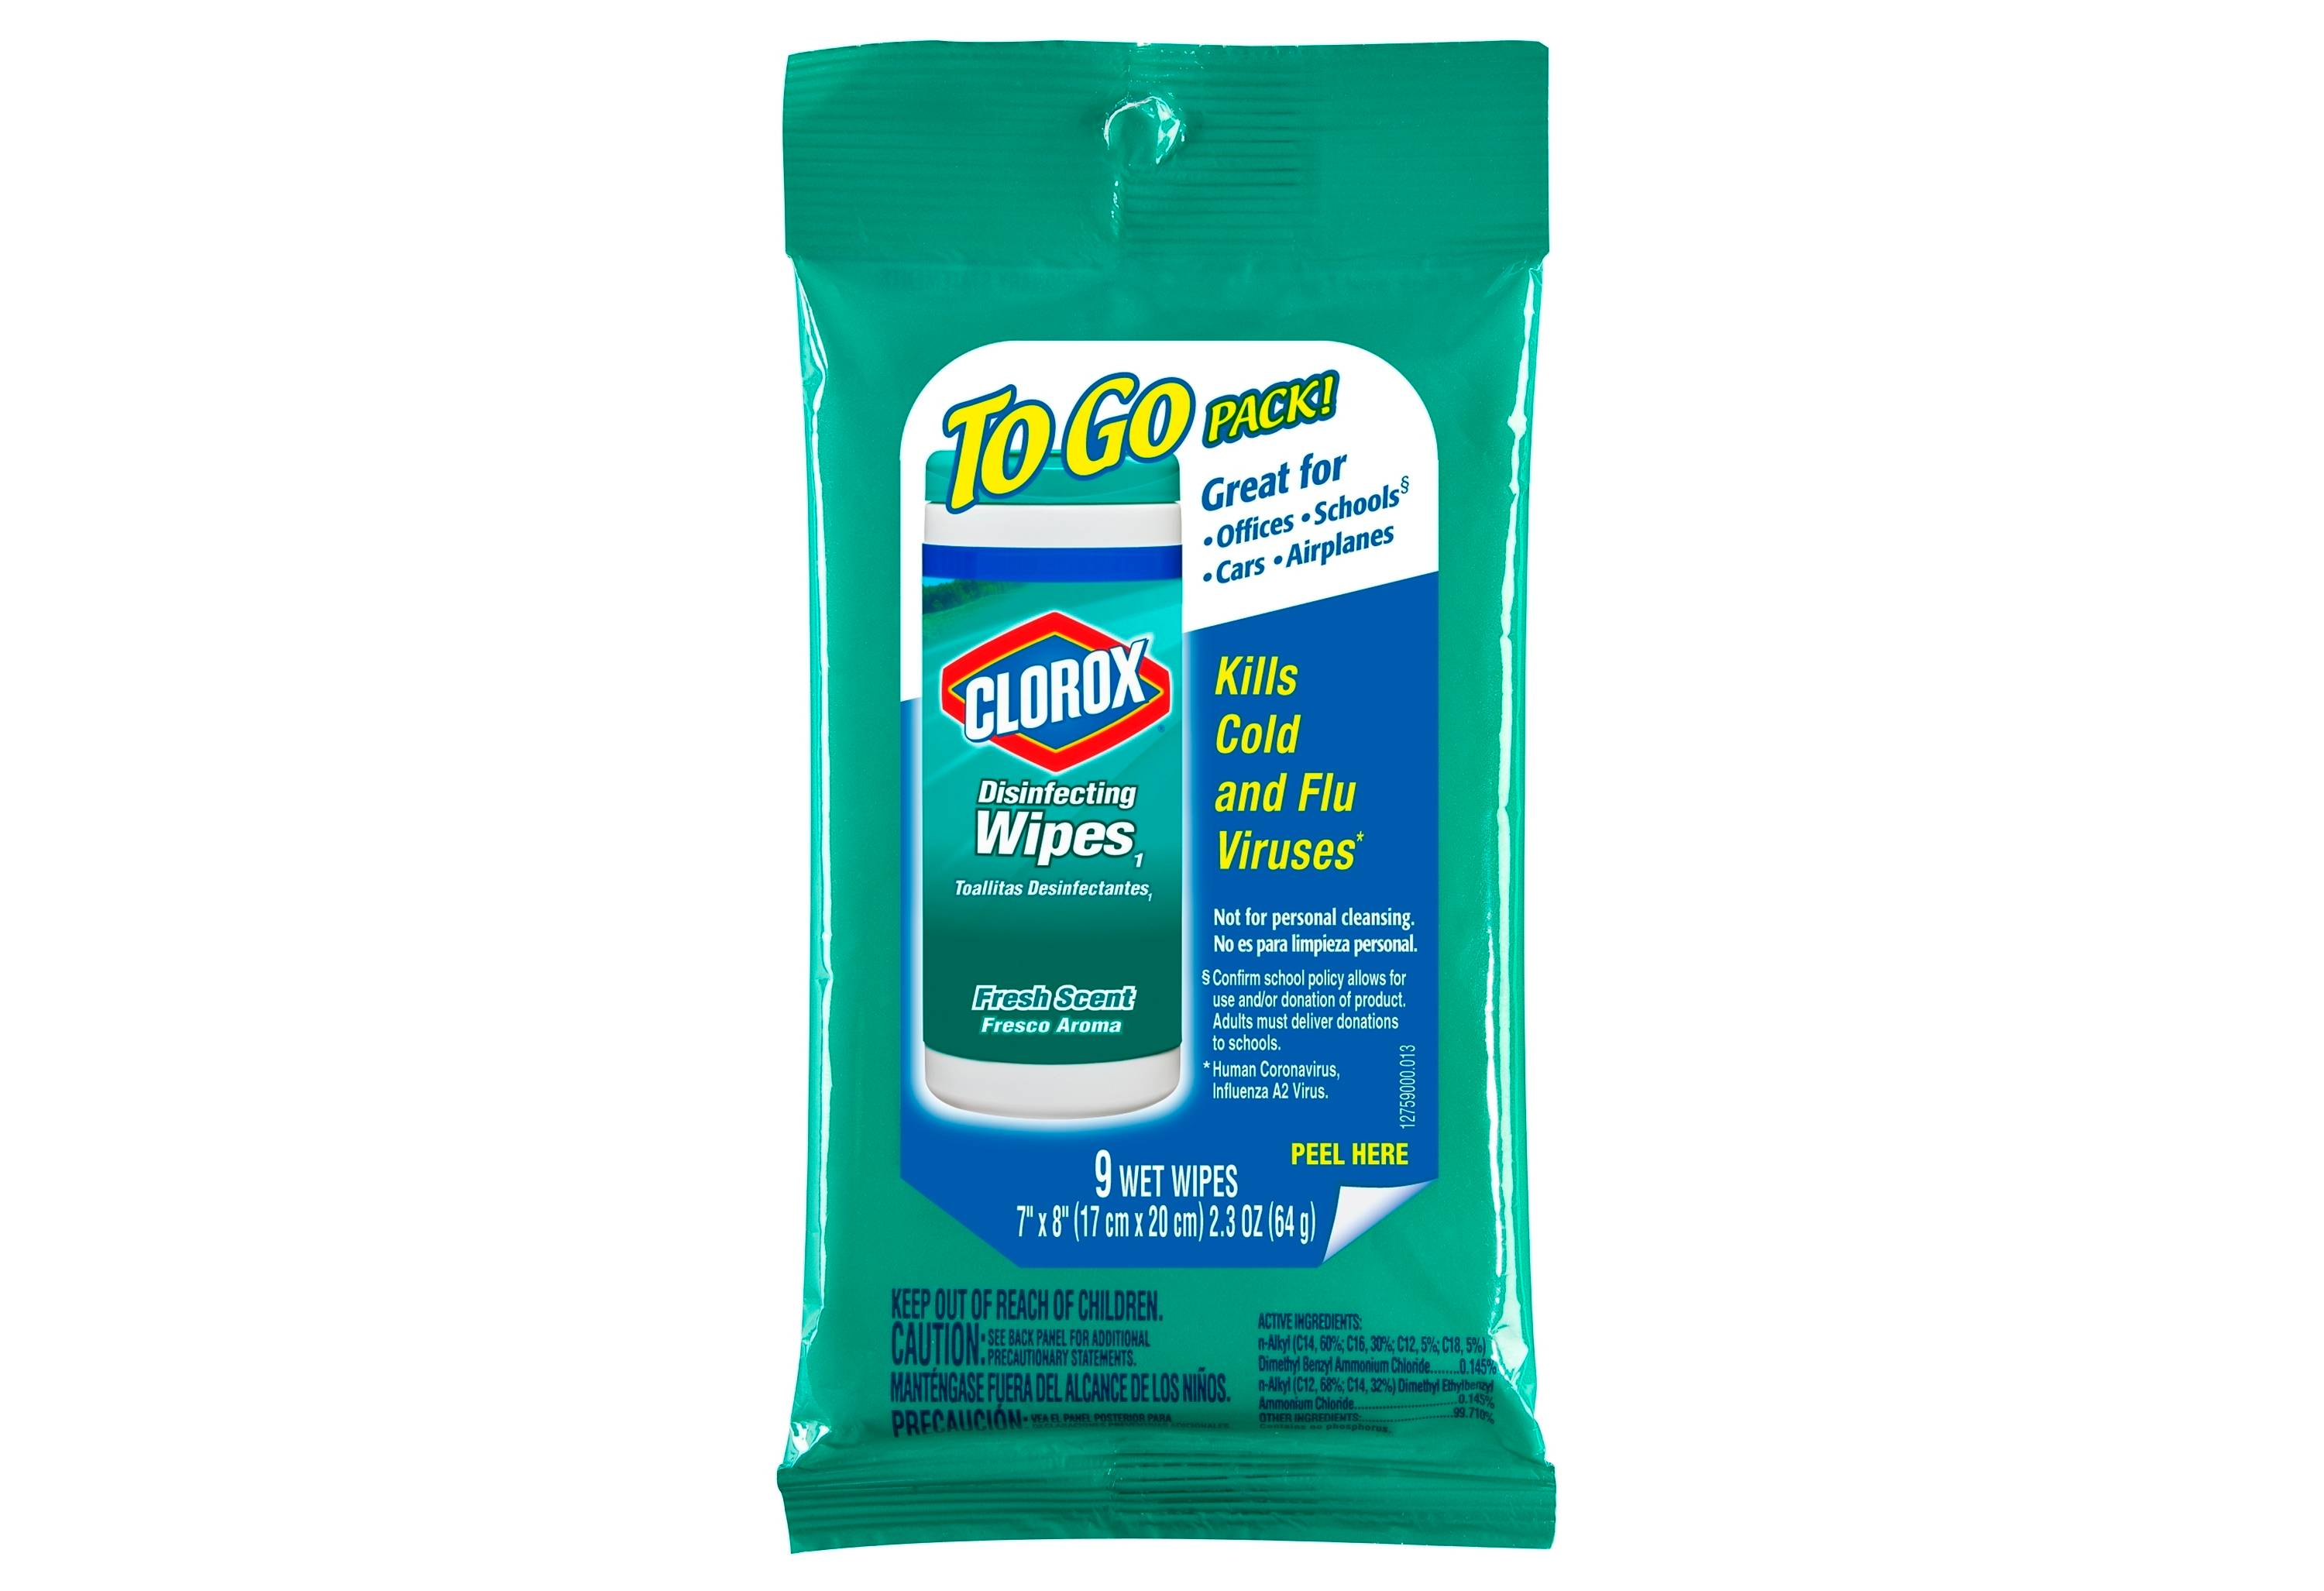 Travel disinfecting wipes